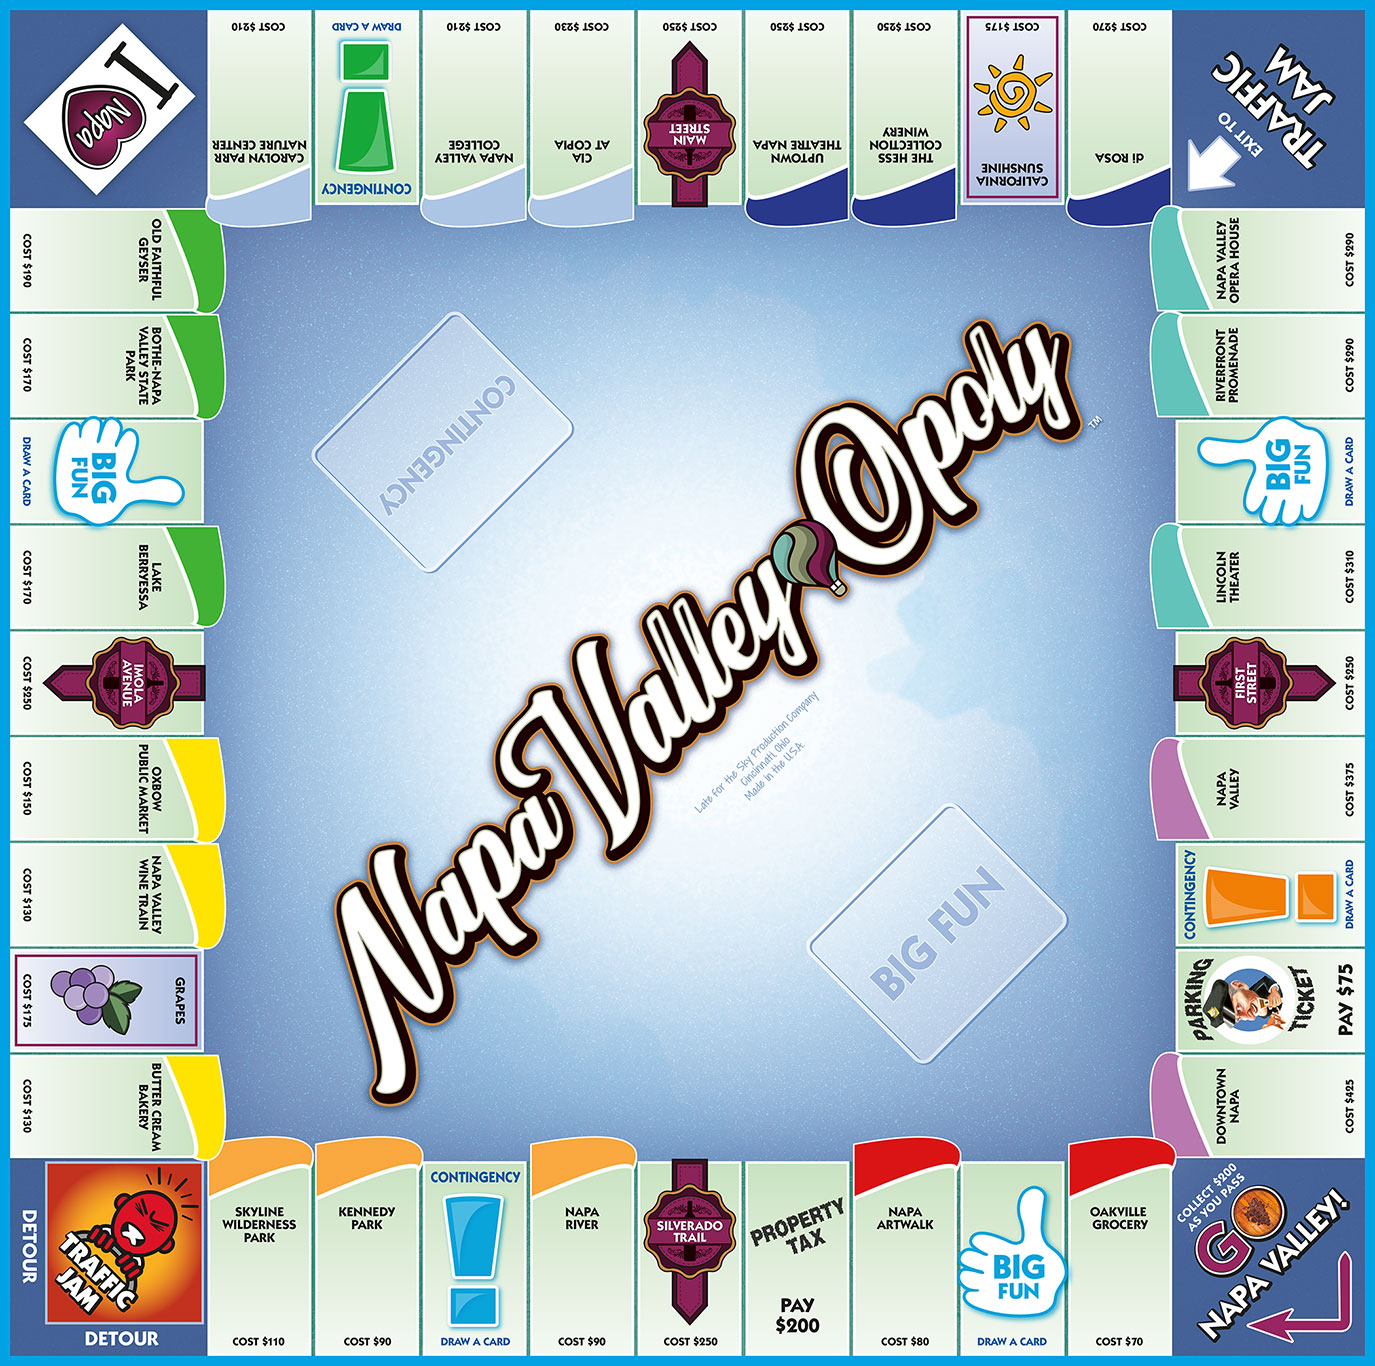 NAPA VALLEY-OPOLY Board Game